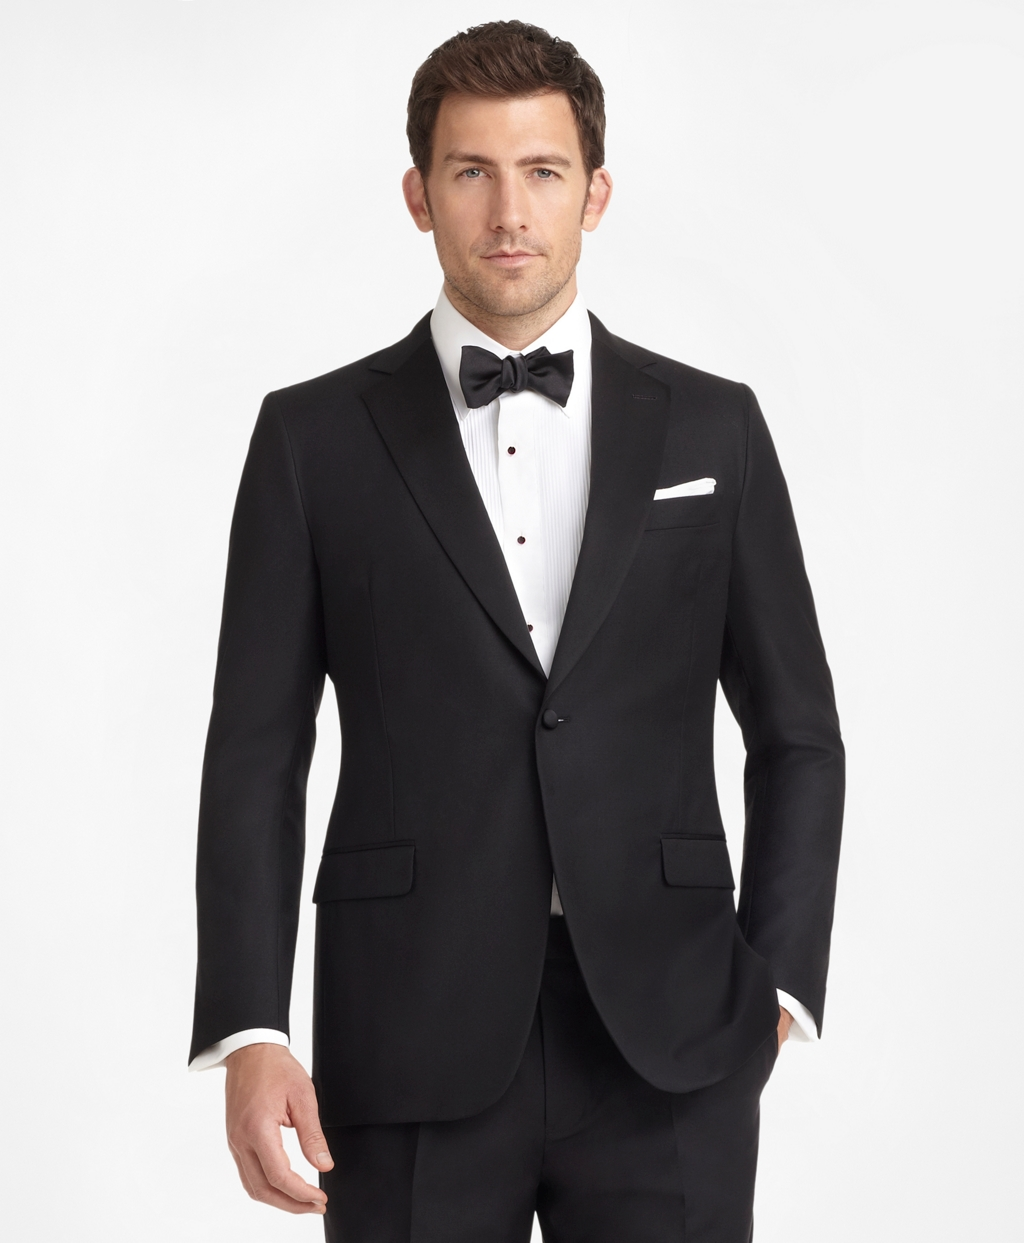 New Vintage Tuxedos, Tailcoats, Morning Suits, Dinner Jackets Brooks Brothers Mens Fitzgerald Fit Golden Fleece One-Button Notch Tuxedo $2,100.00 AT vintagedancer.com